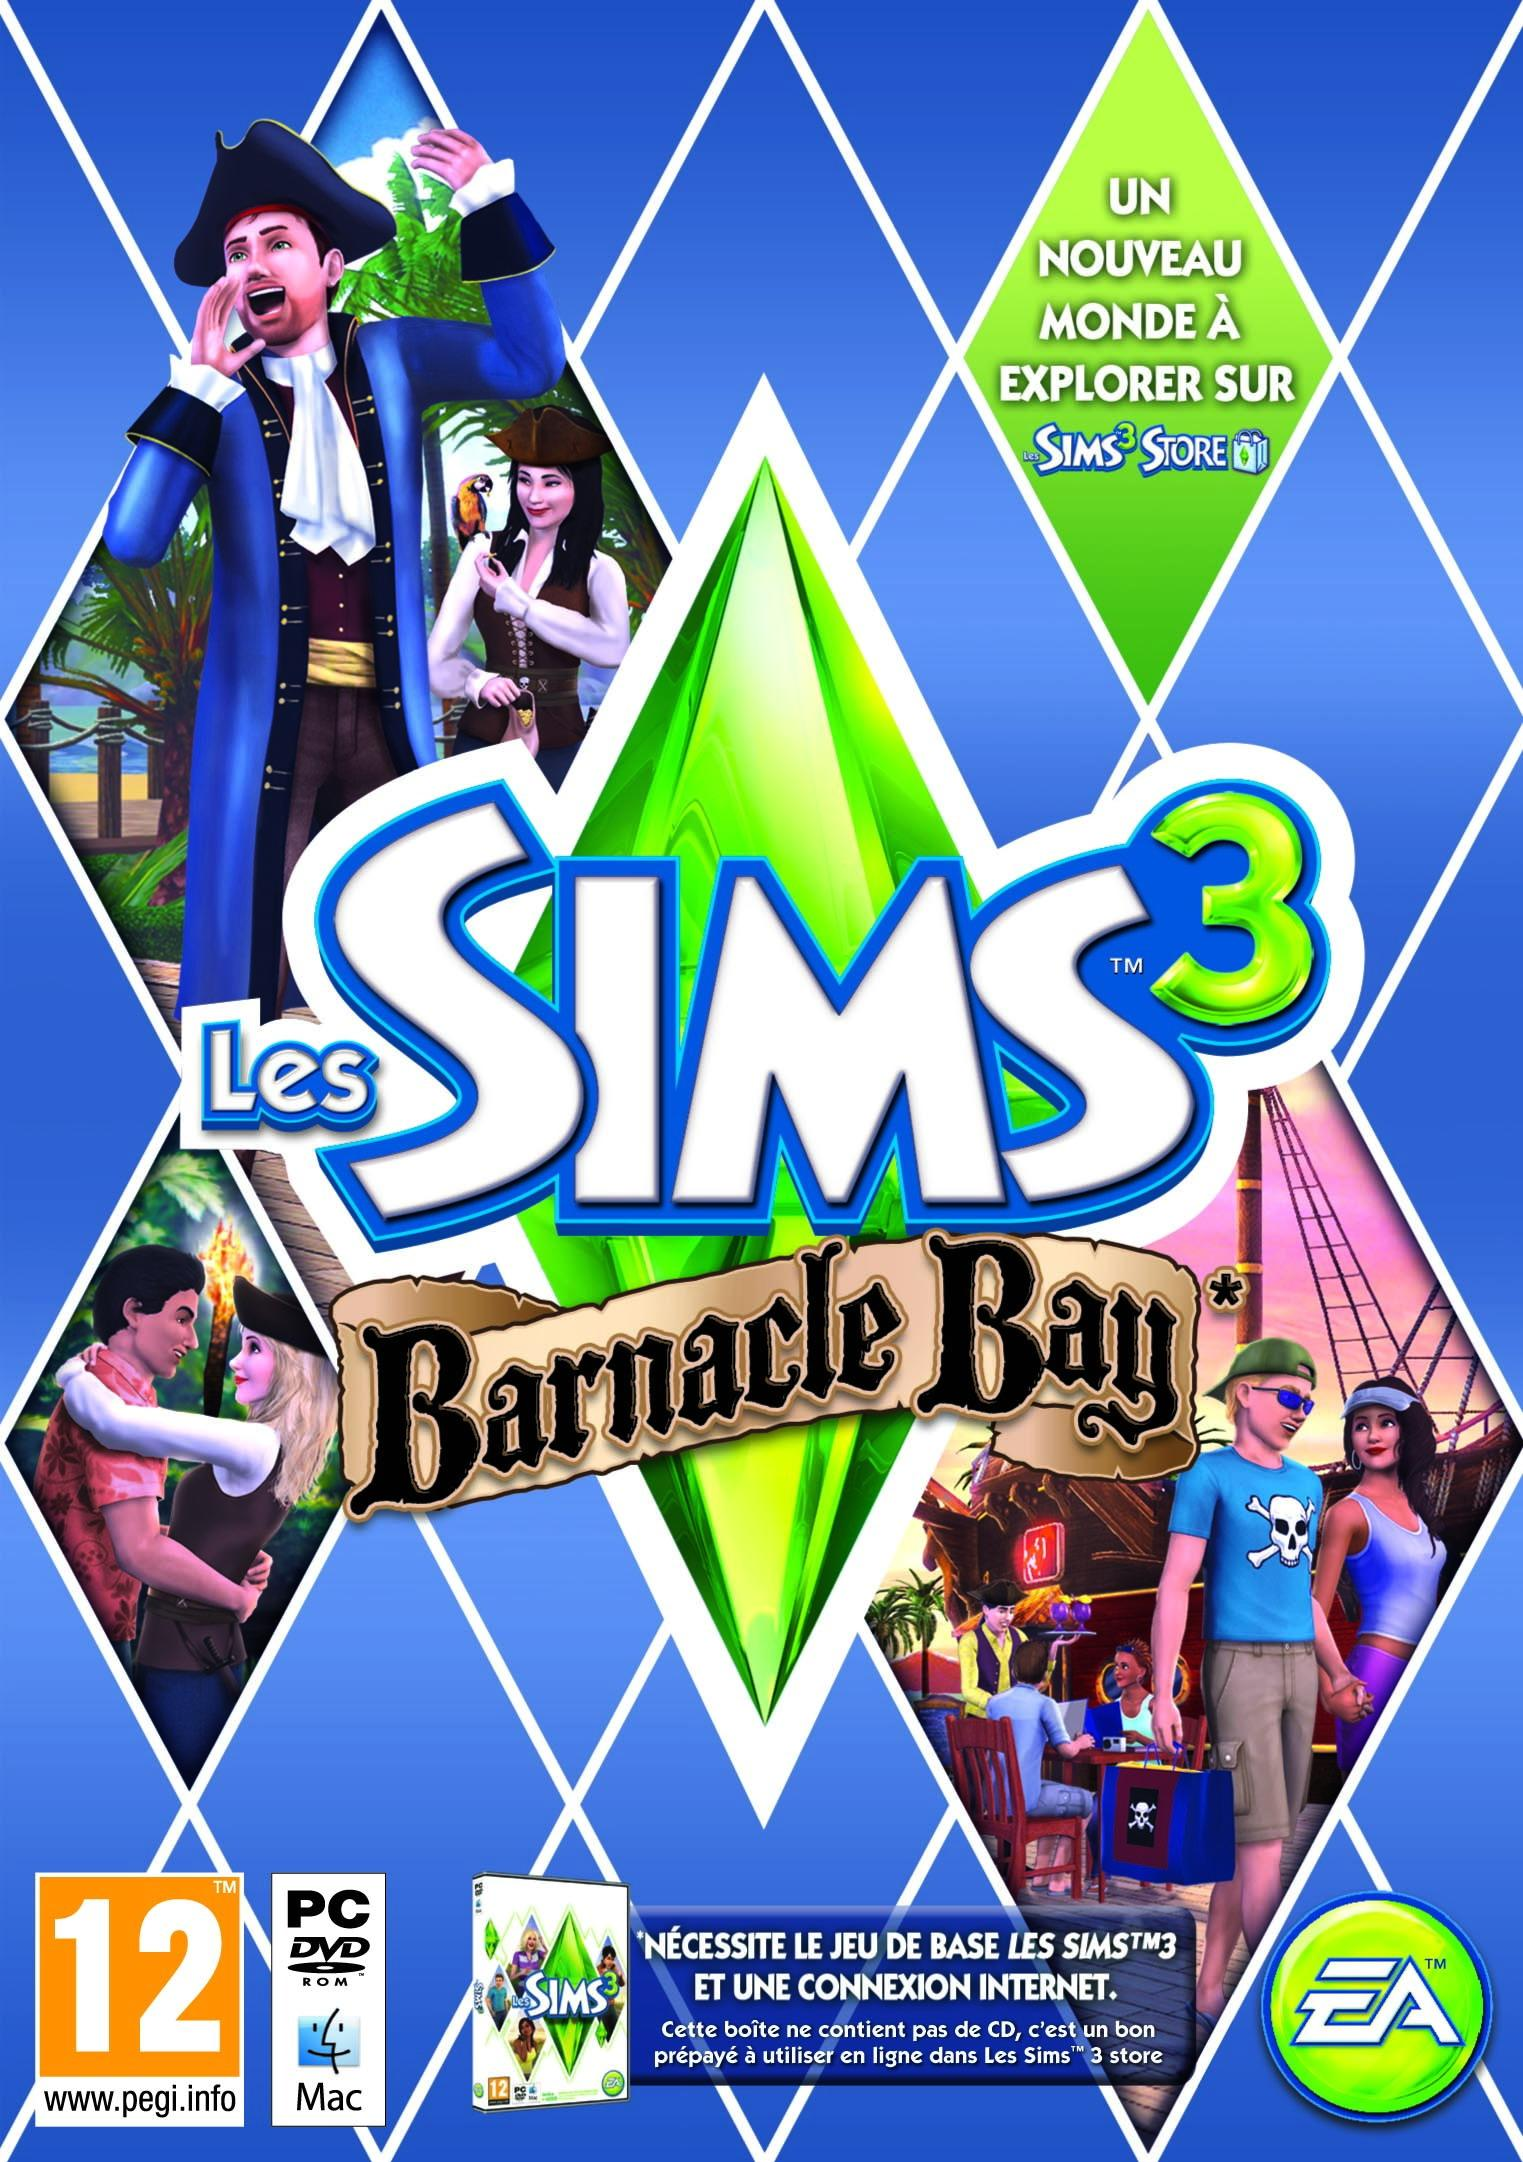 Les Sims 3 Showtime Edition Collector Katy Perry: Les Sims 3: Barnacle Bay